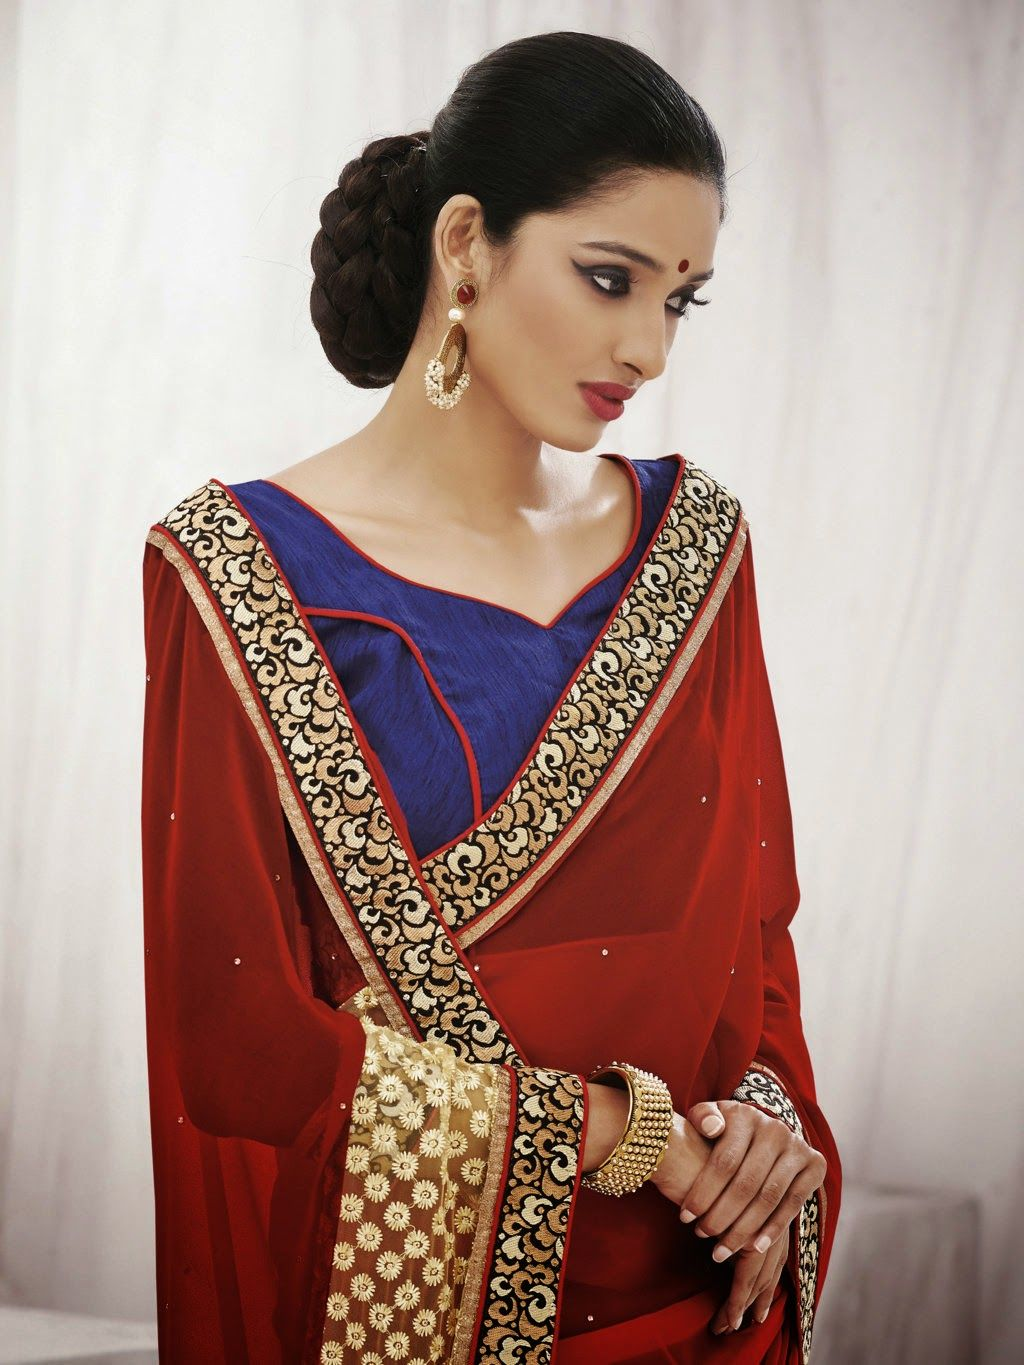 Backed by our rich industry expertise, we have come up with Designer Sarees for our valuable ...